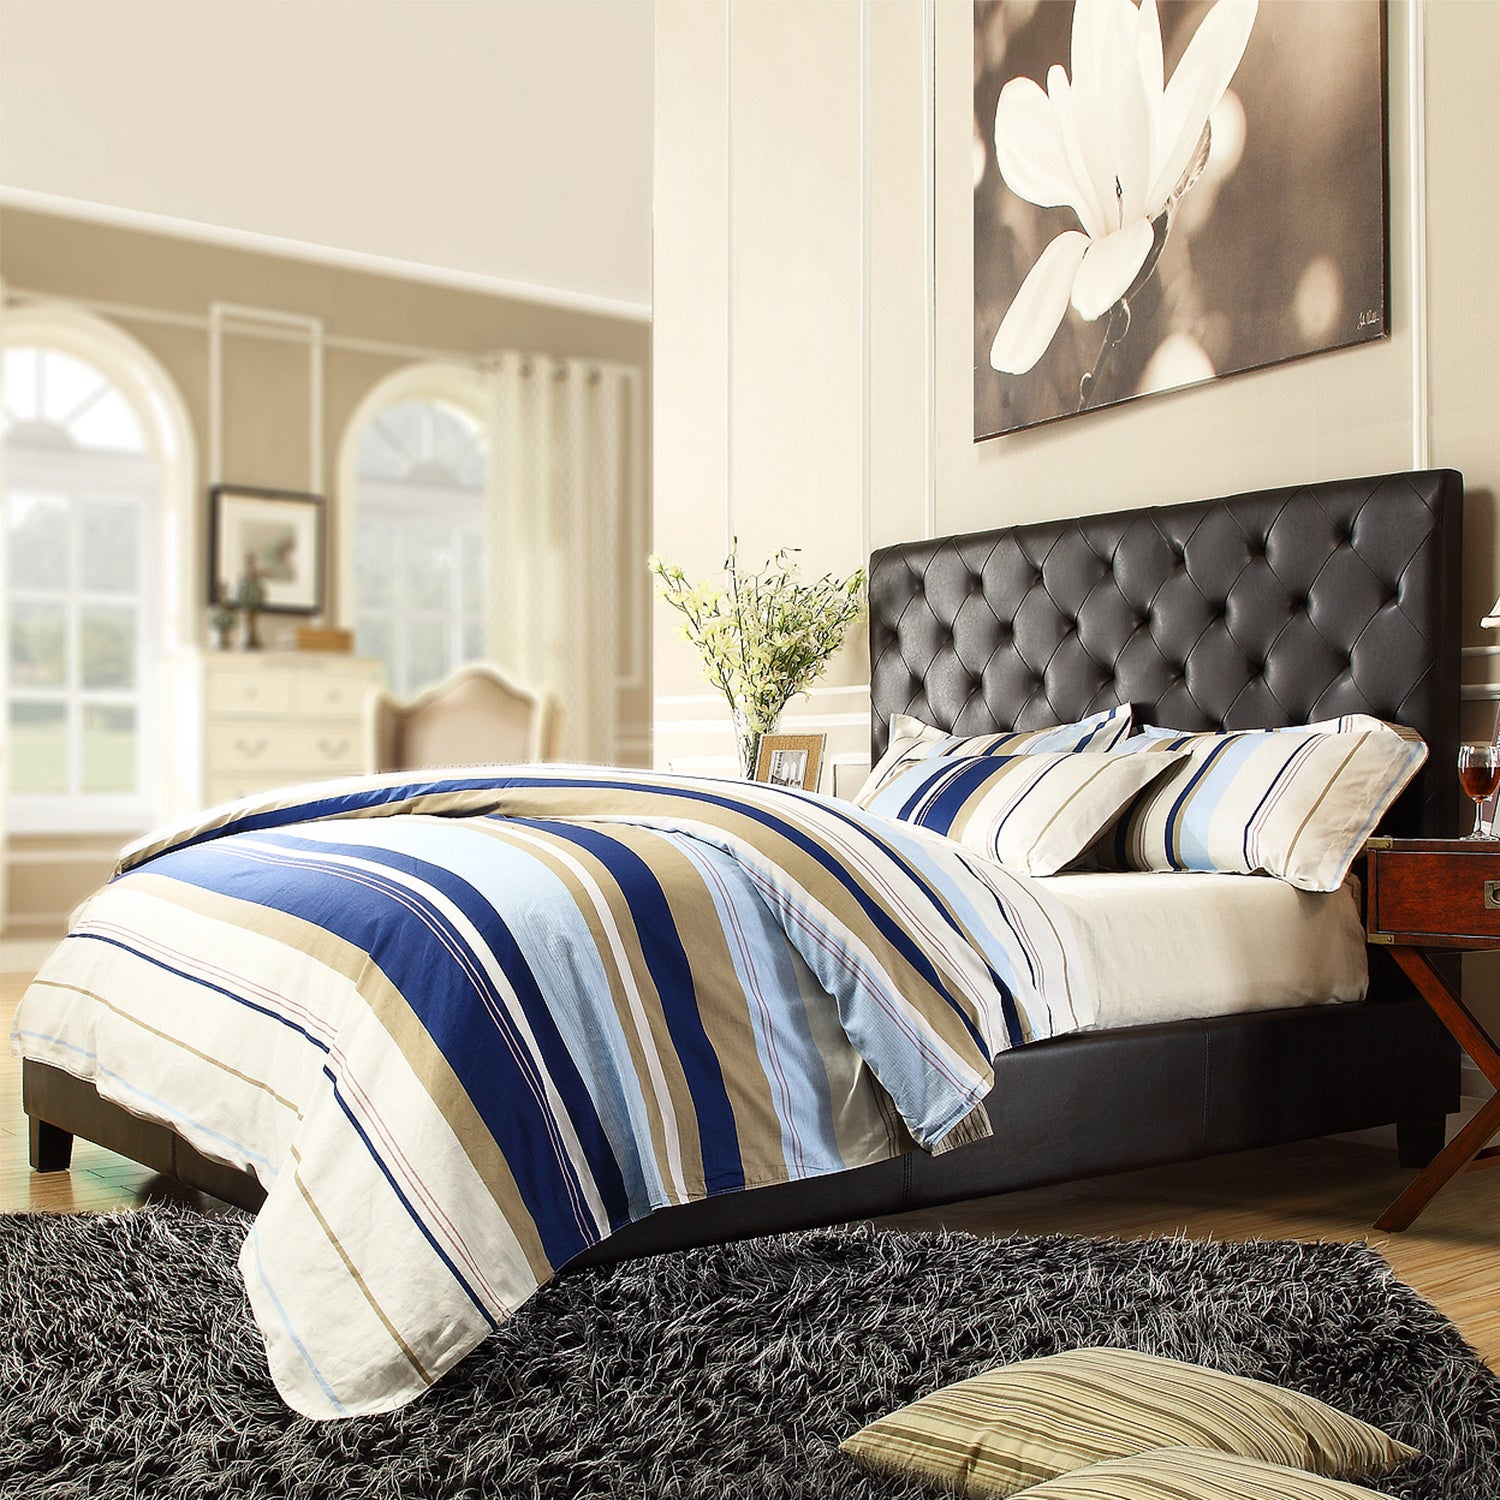 Leather Tufted Bed King Leather Tufted King-sized